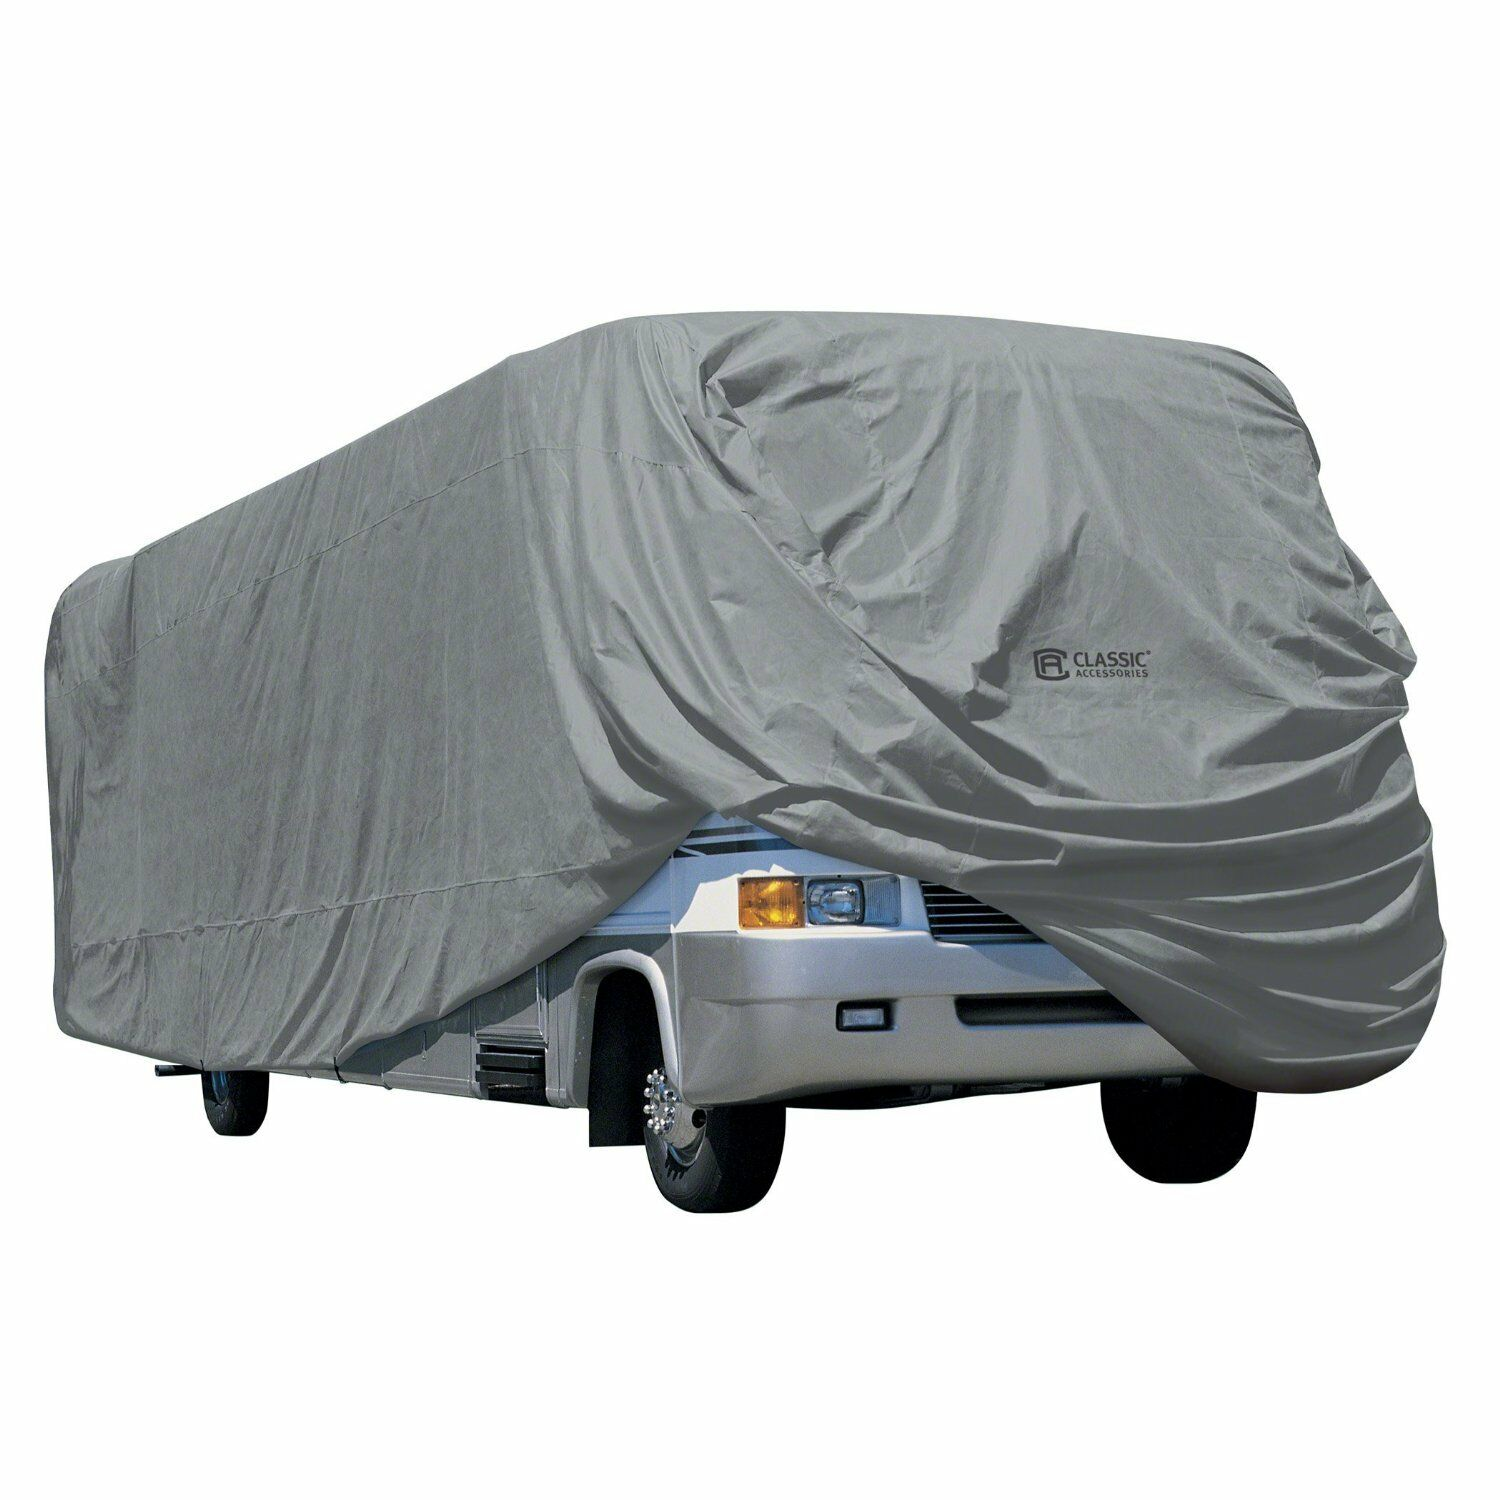 Classic Accessories 80-161 RV Cover PolyPRO I Class A 24-feet - 28-feet